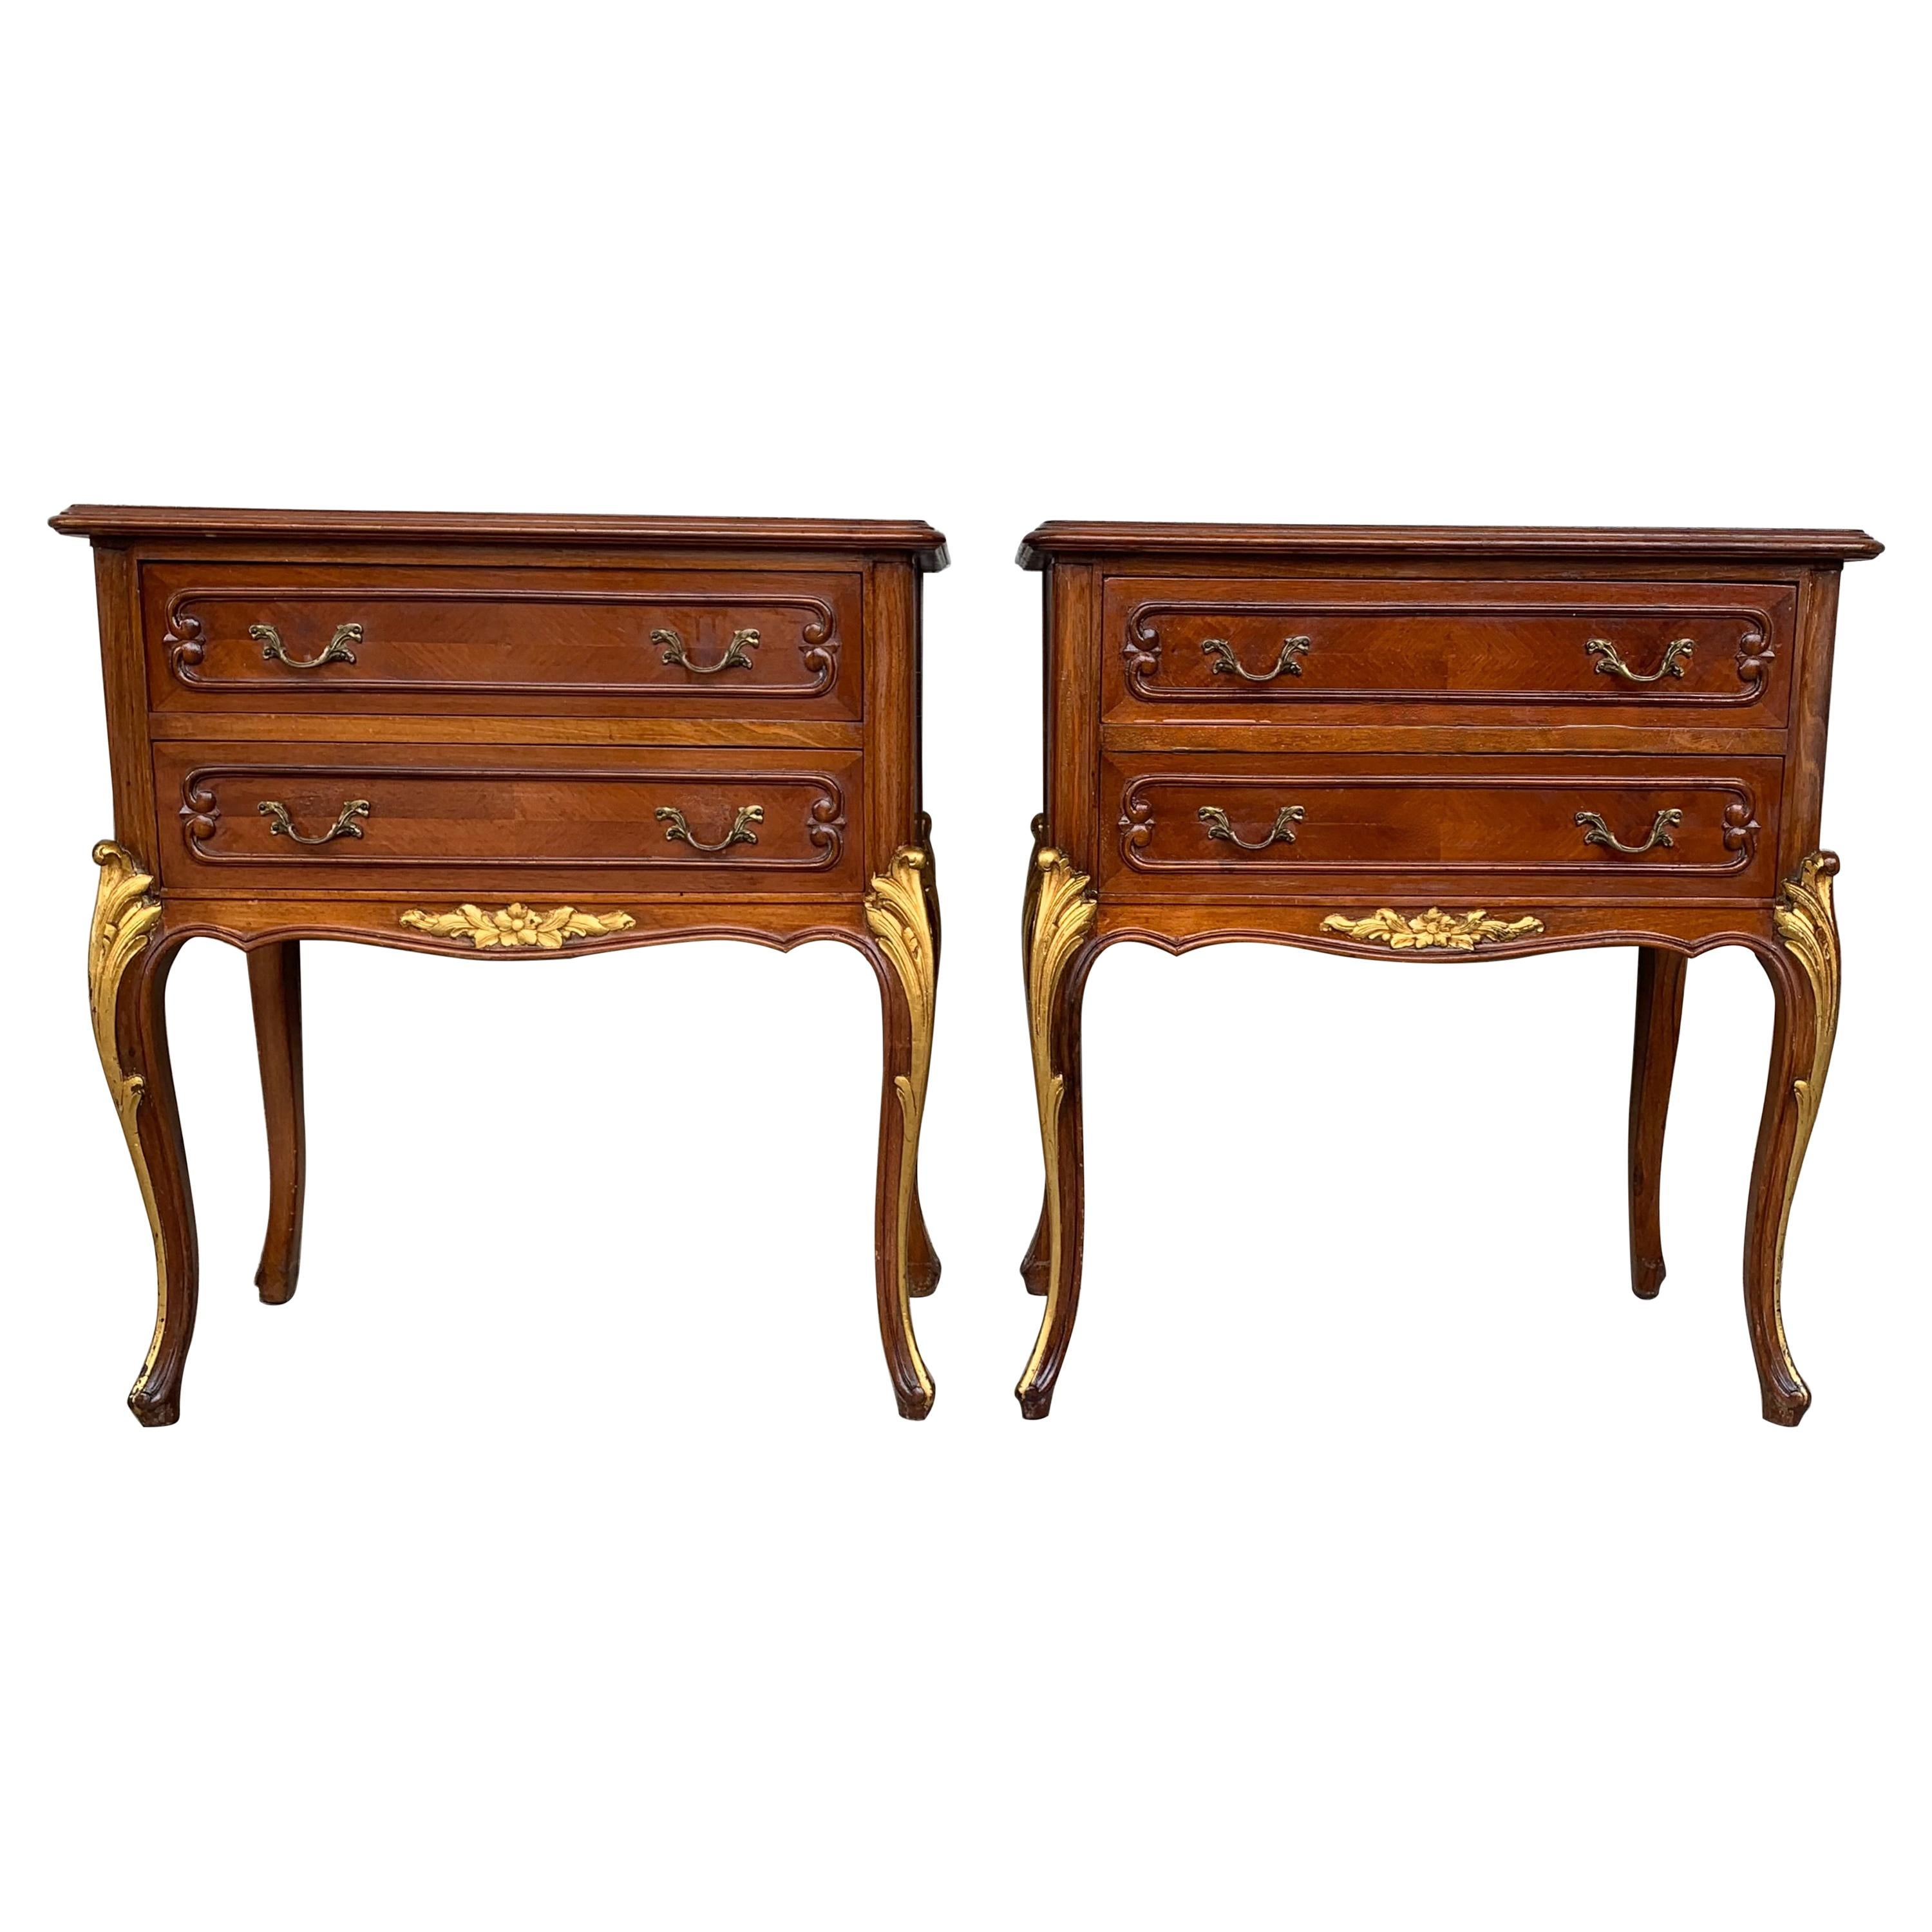 Pair of French Louis XV Style Walnut Bedside Tables with Drawers